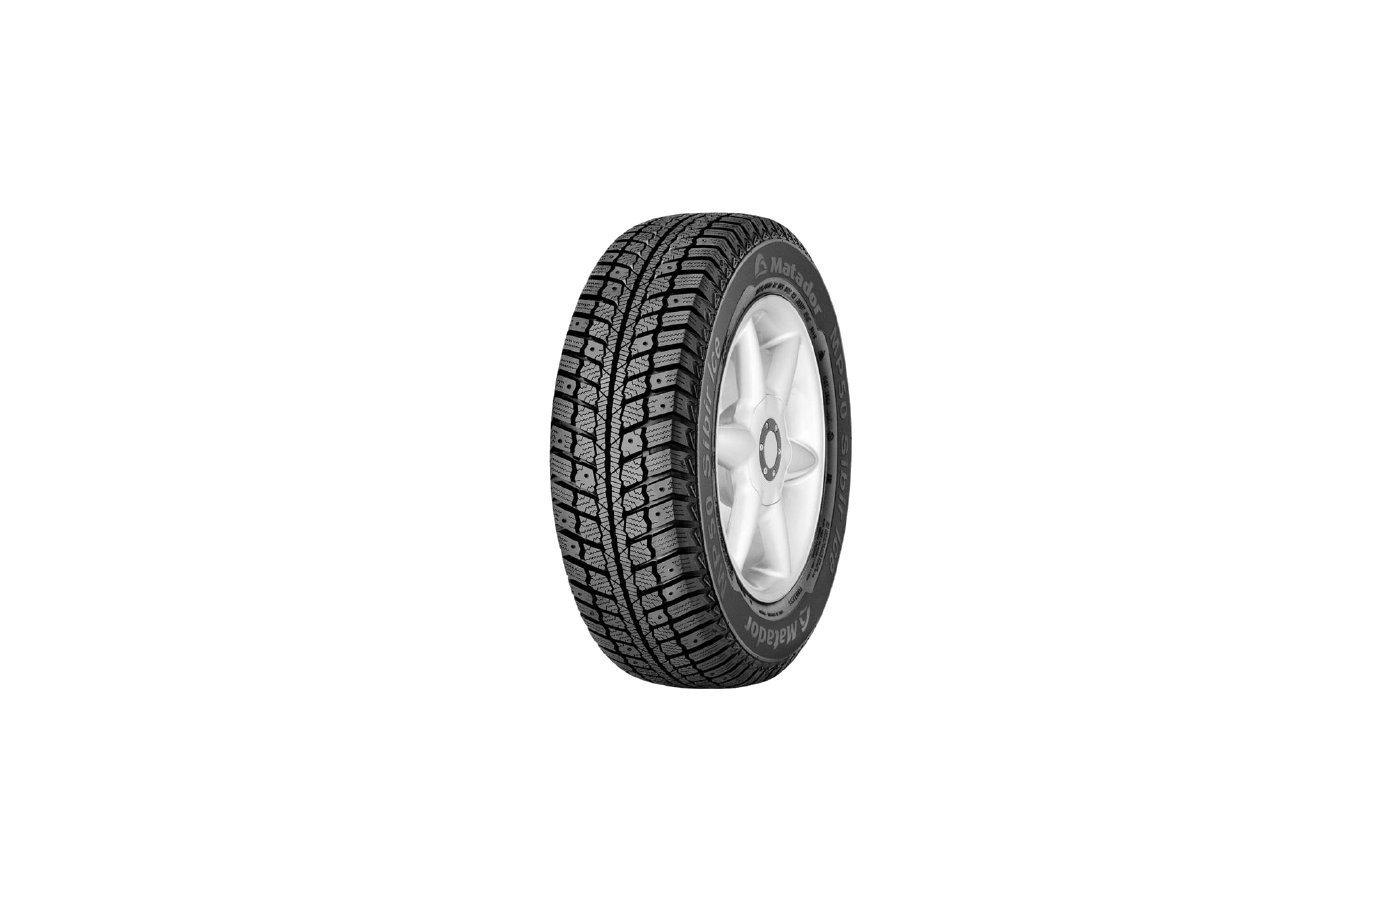 Шина Matador MP 50 Sibir Ice 185/65 R15 TL 88T шип